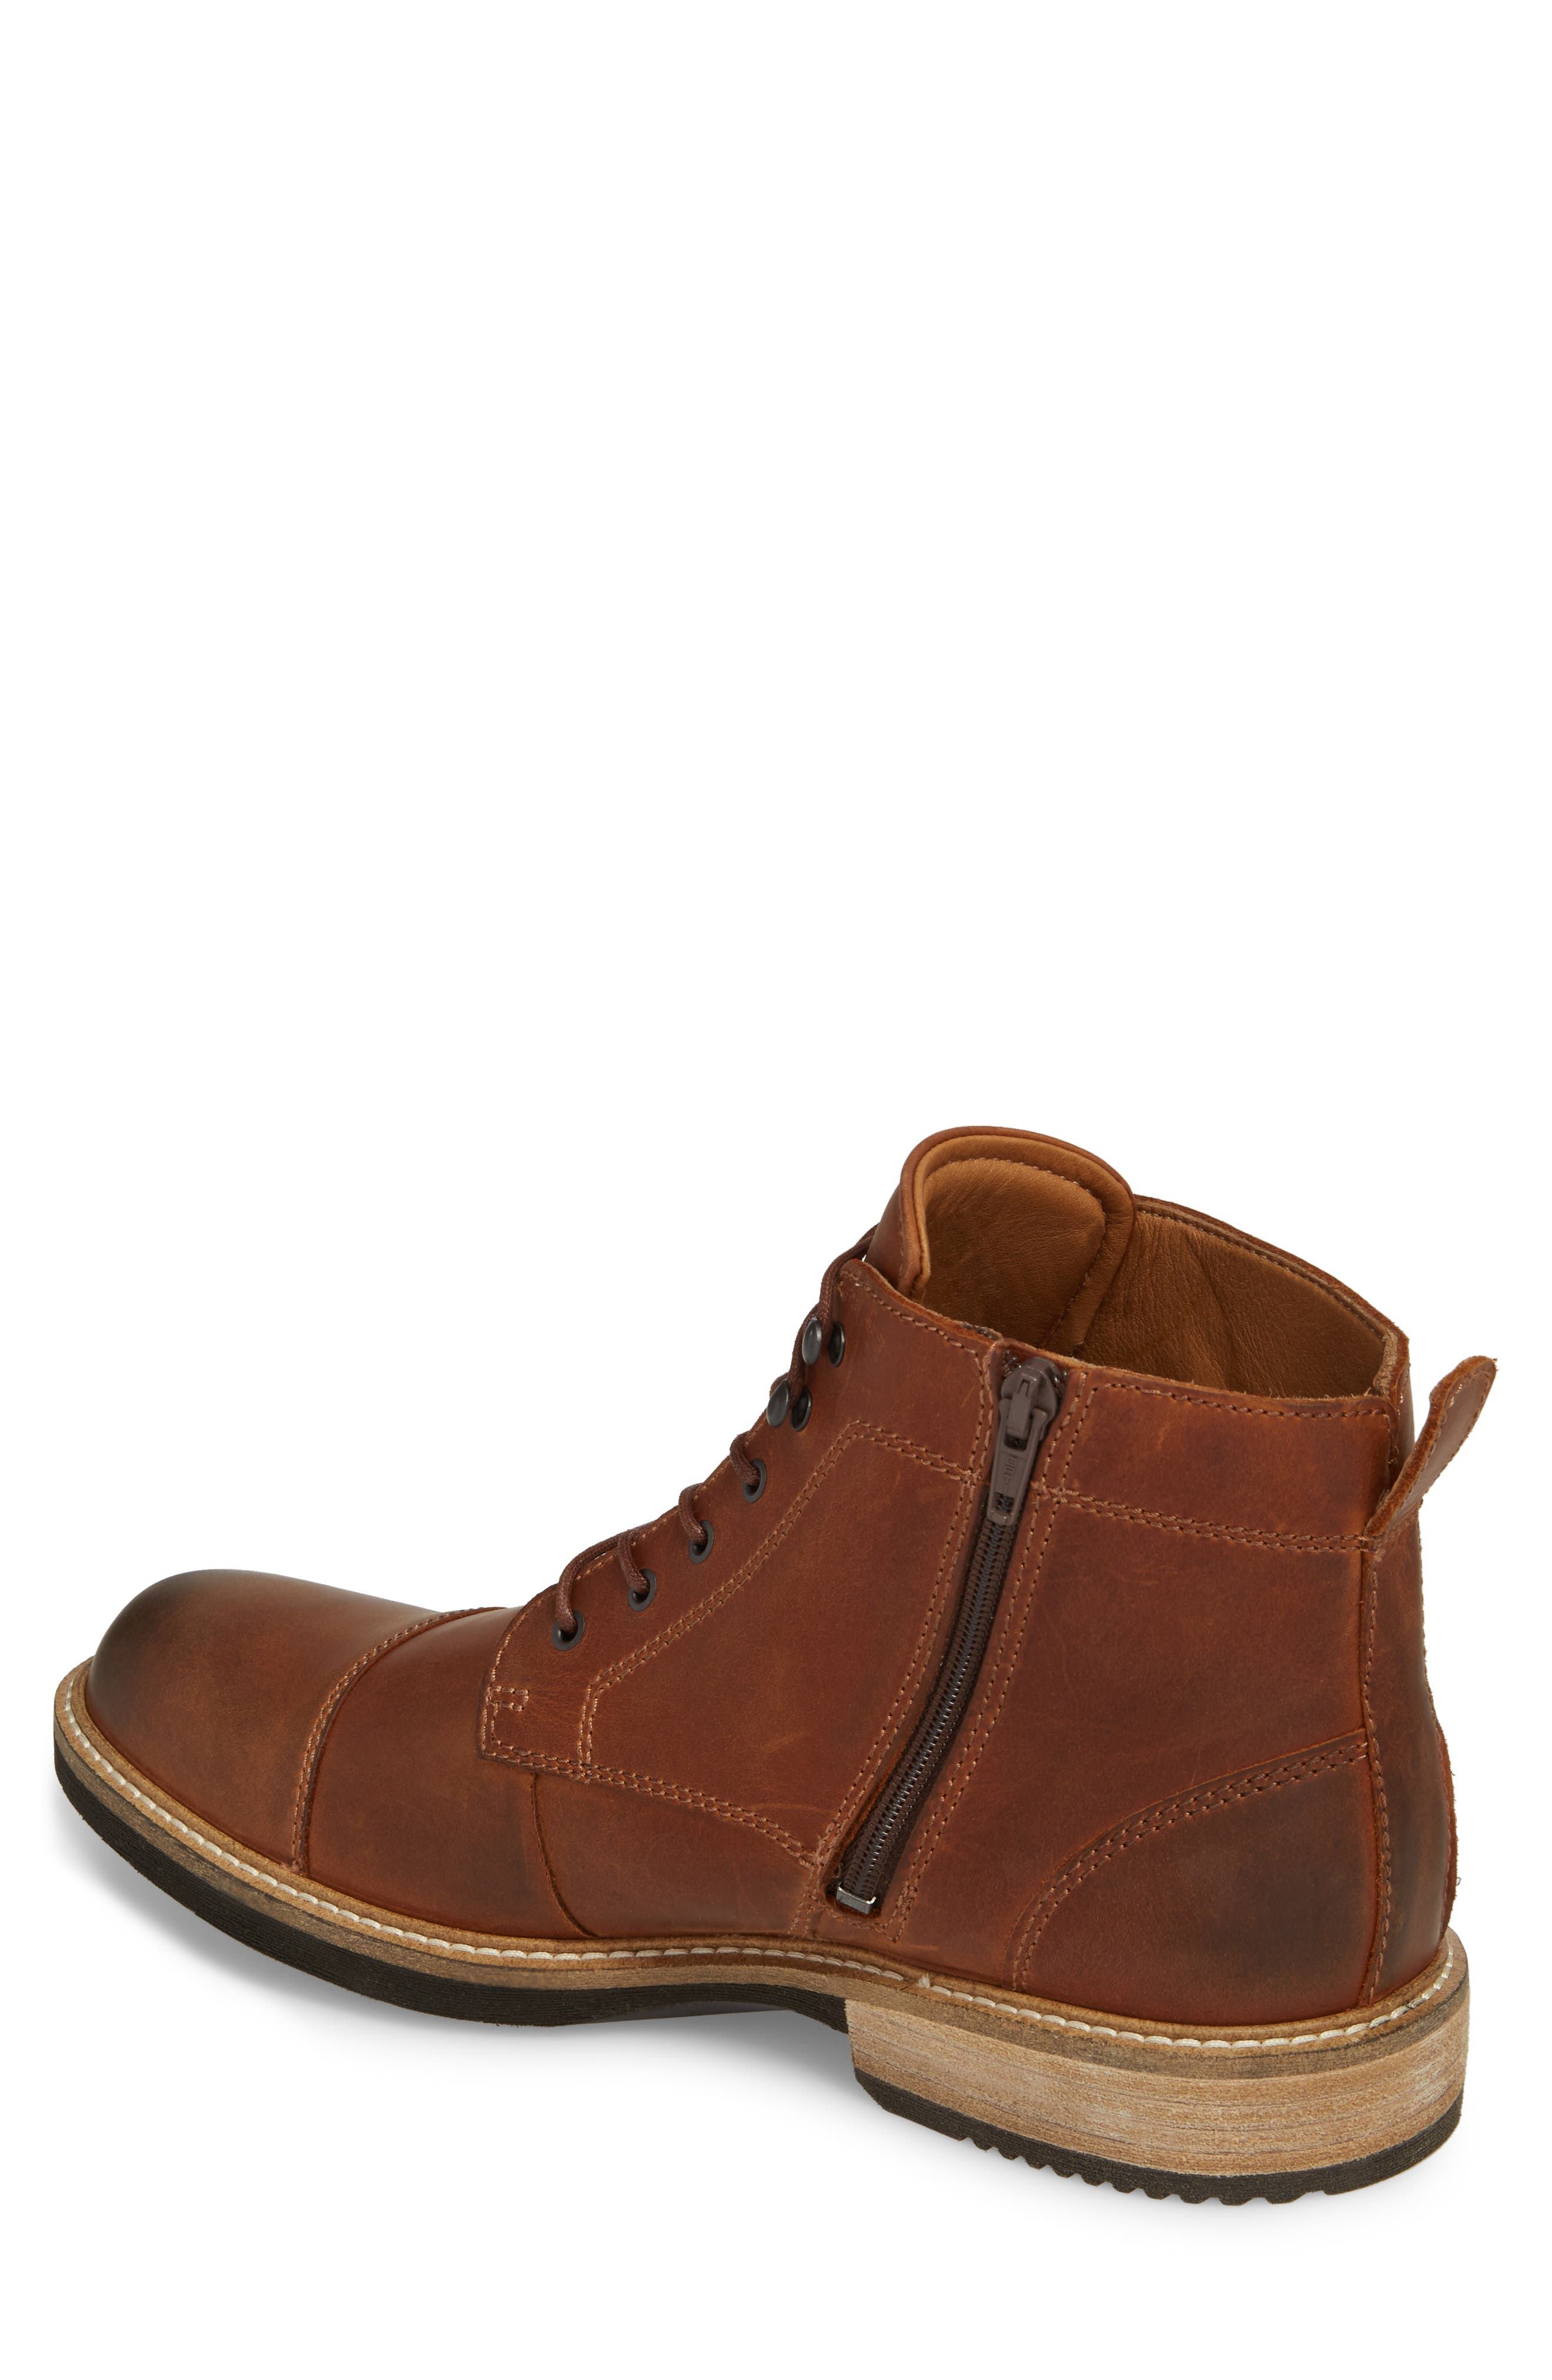 Kenton Vintage Cap Toe Boot,                             Alternate thumbnail 2, color,                             Cognac Leather